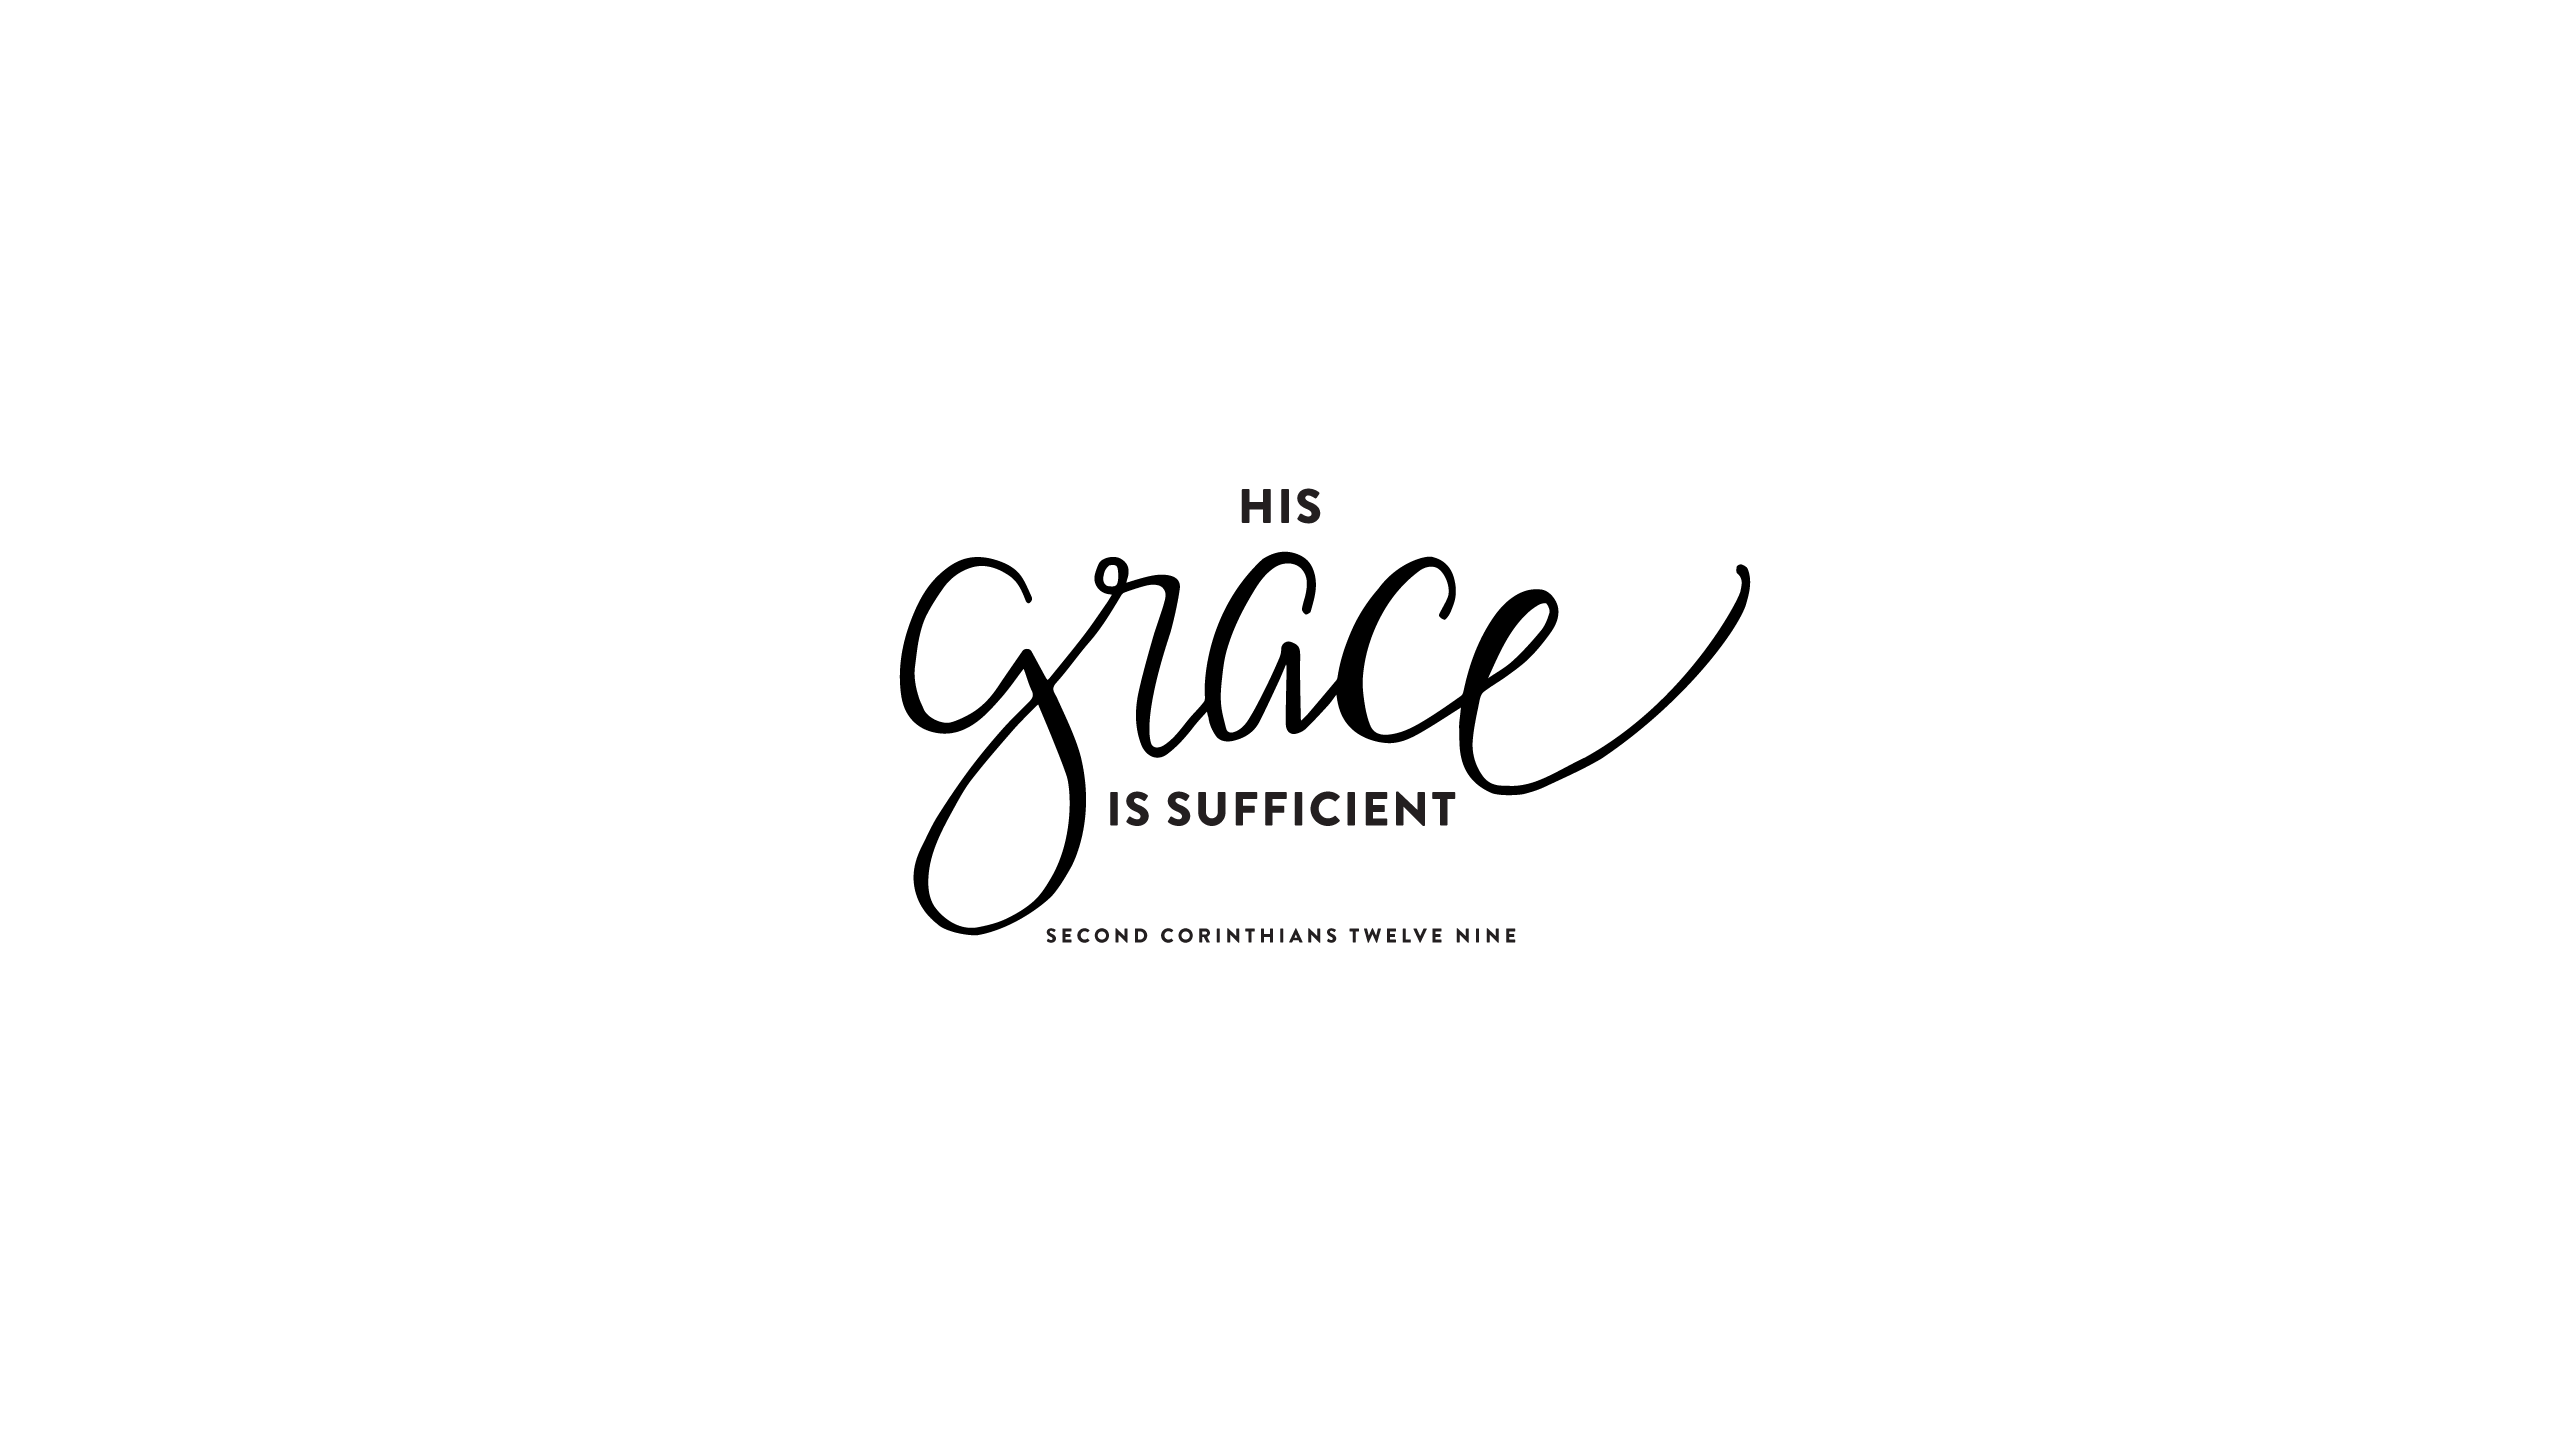 Grace Sufficient Scripture Wallpaper